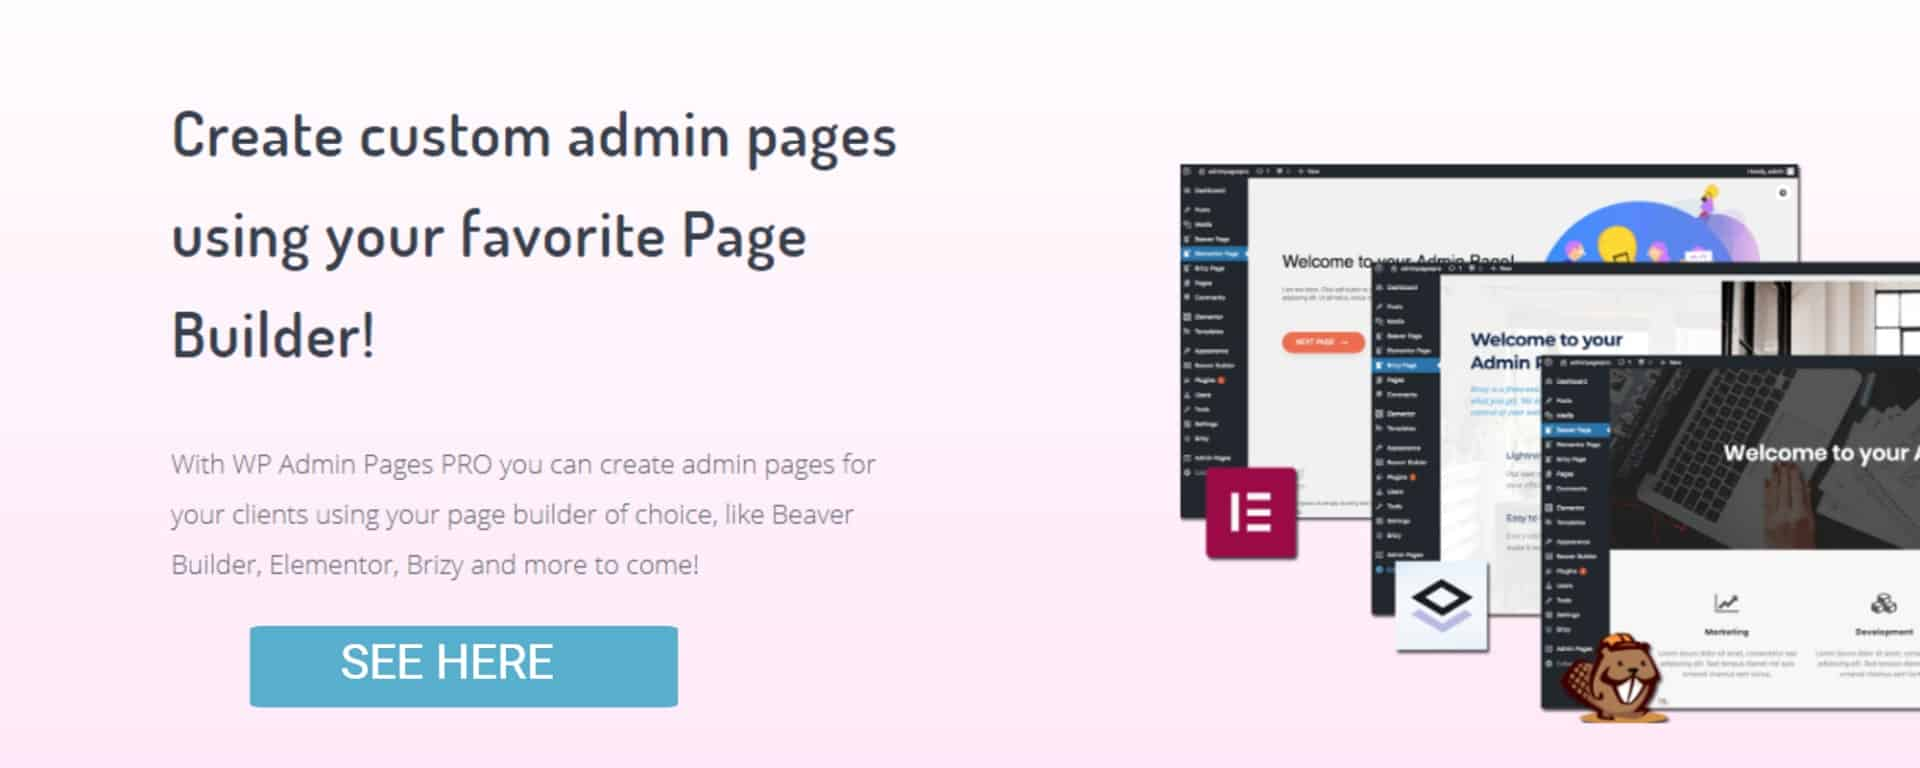 WP Admin Pages Pro Main website